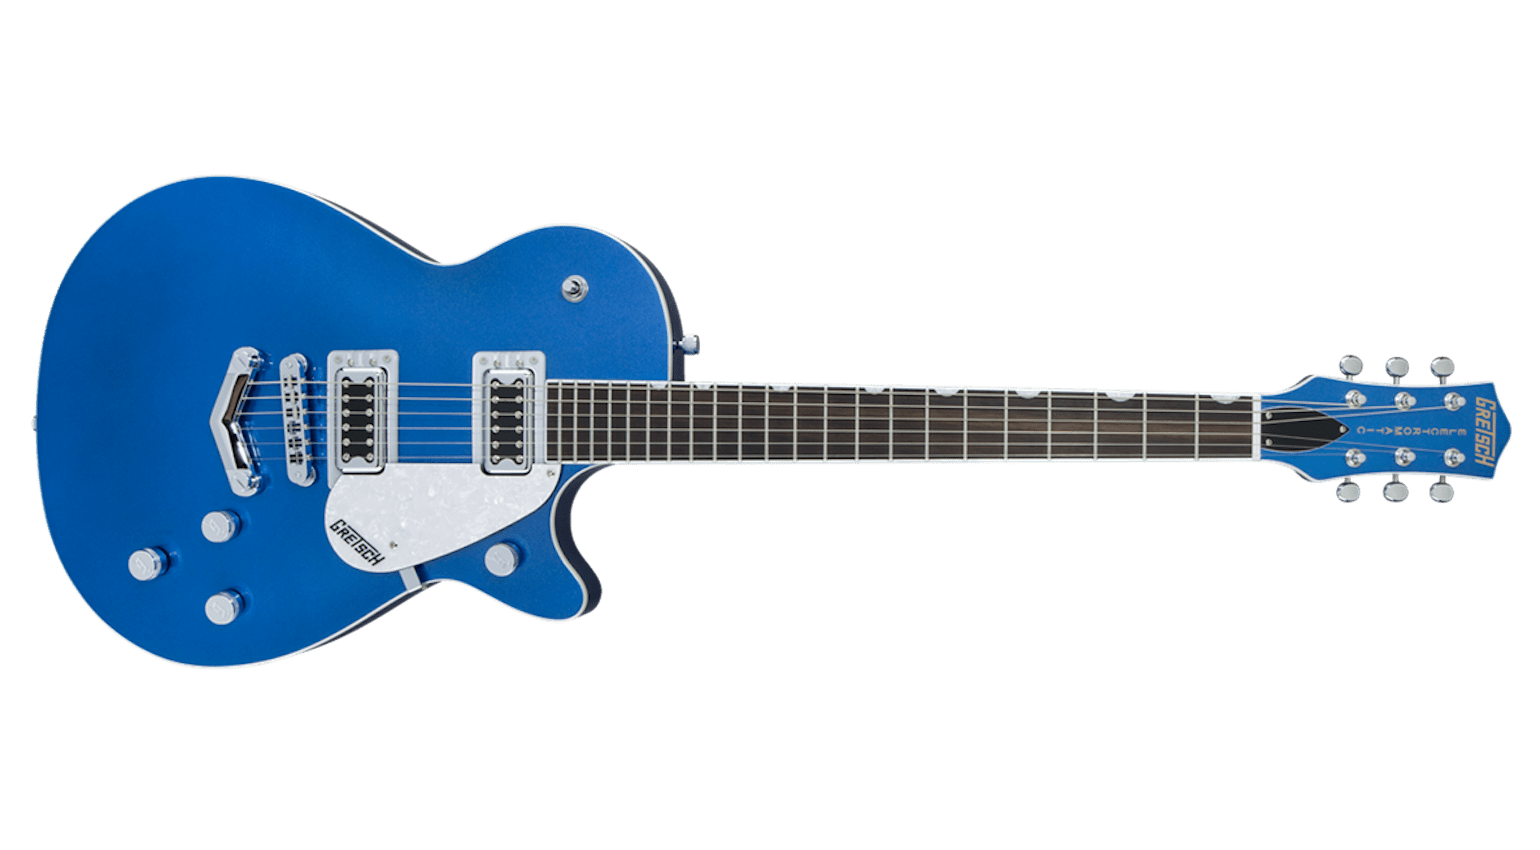 Gretsch G5435 Limited Edition Electromatic Pro Jet